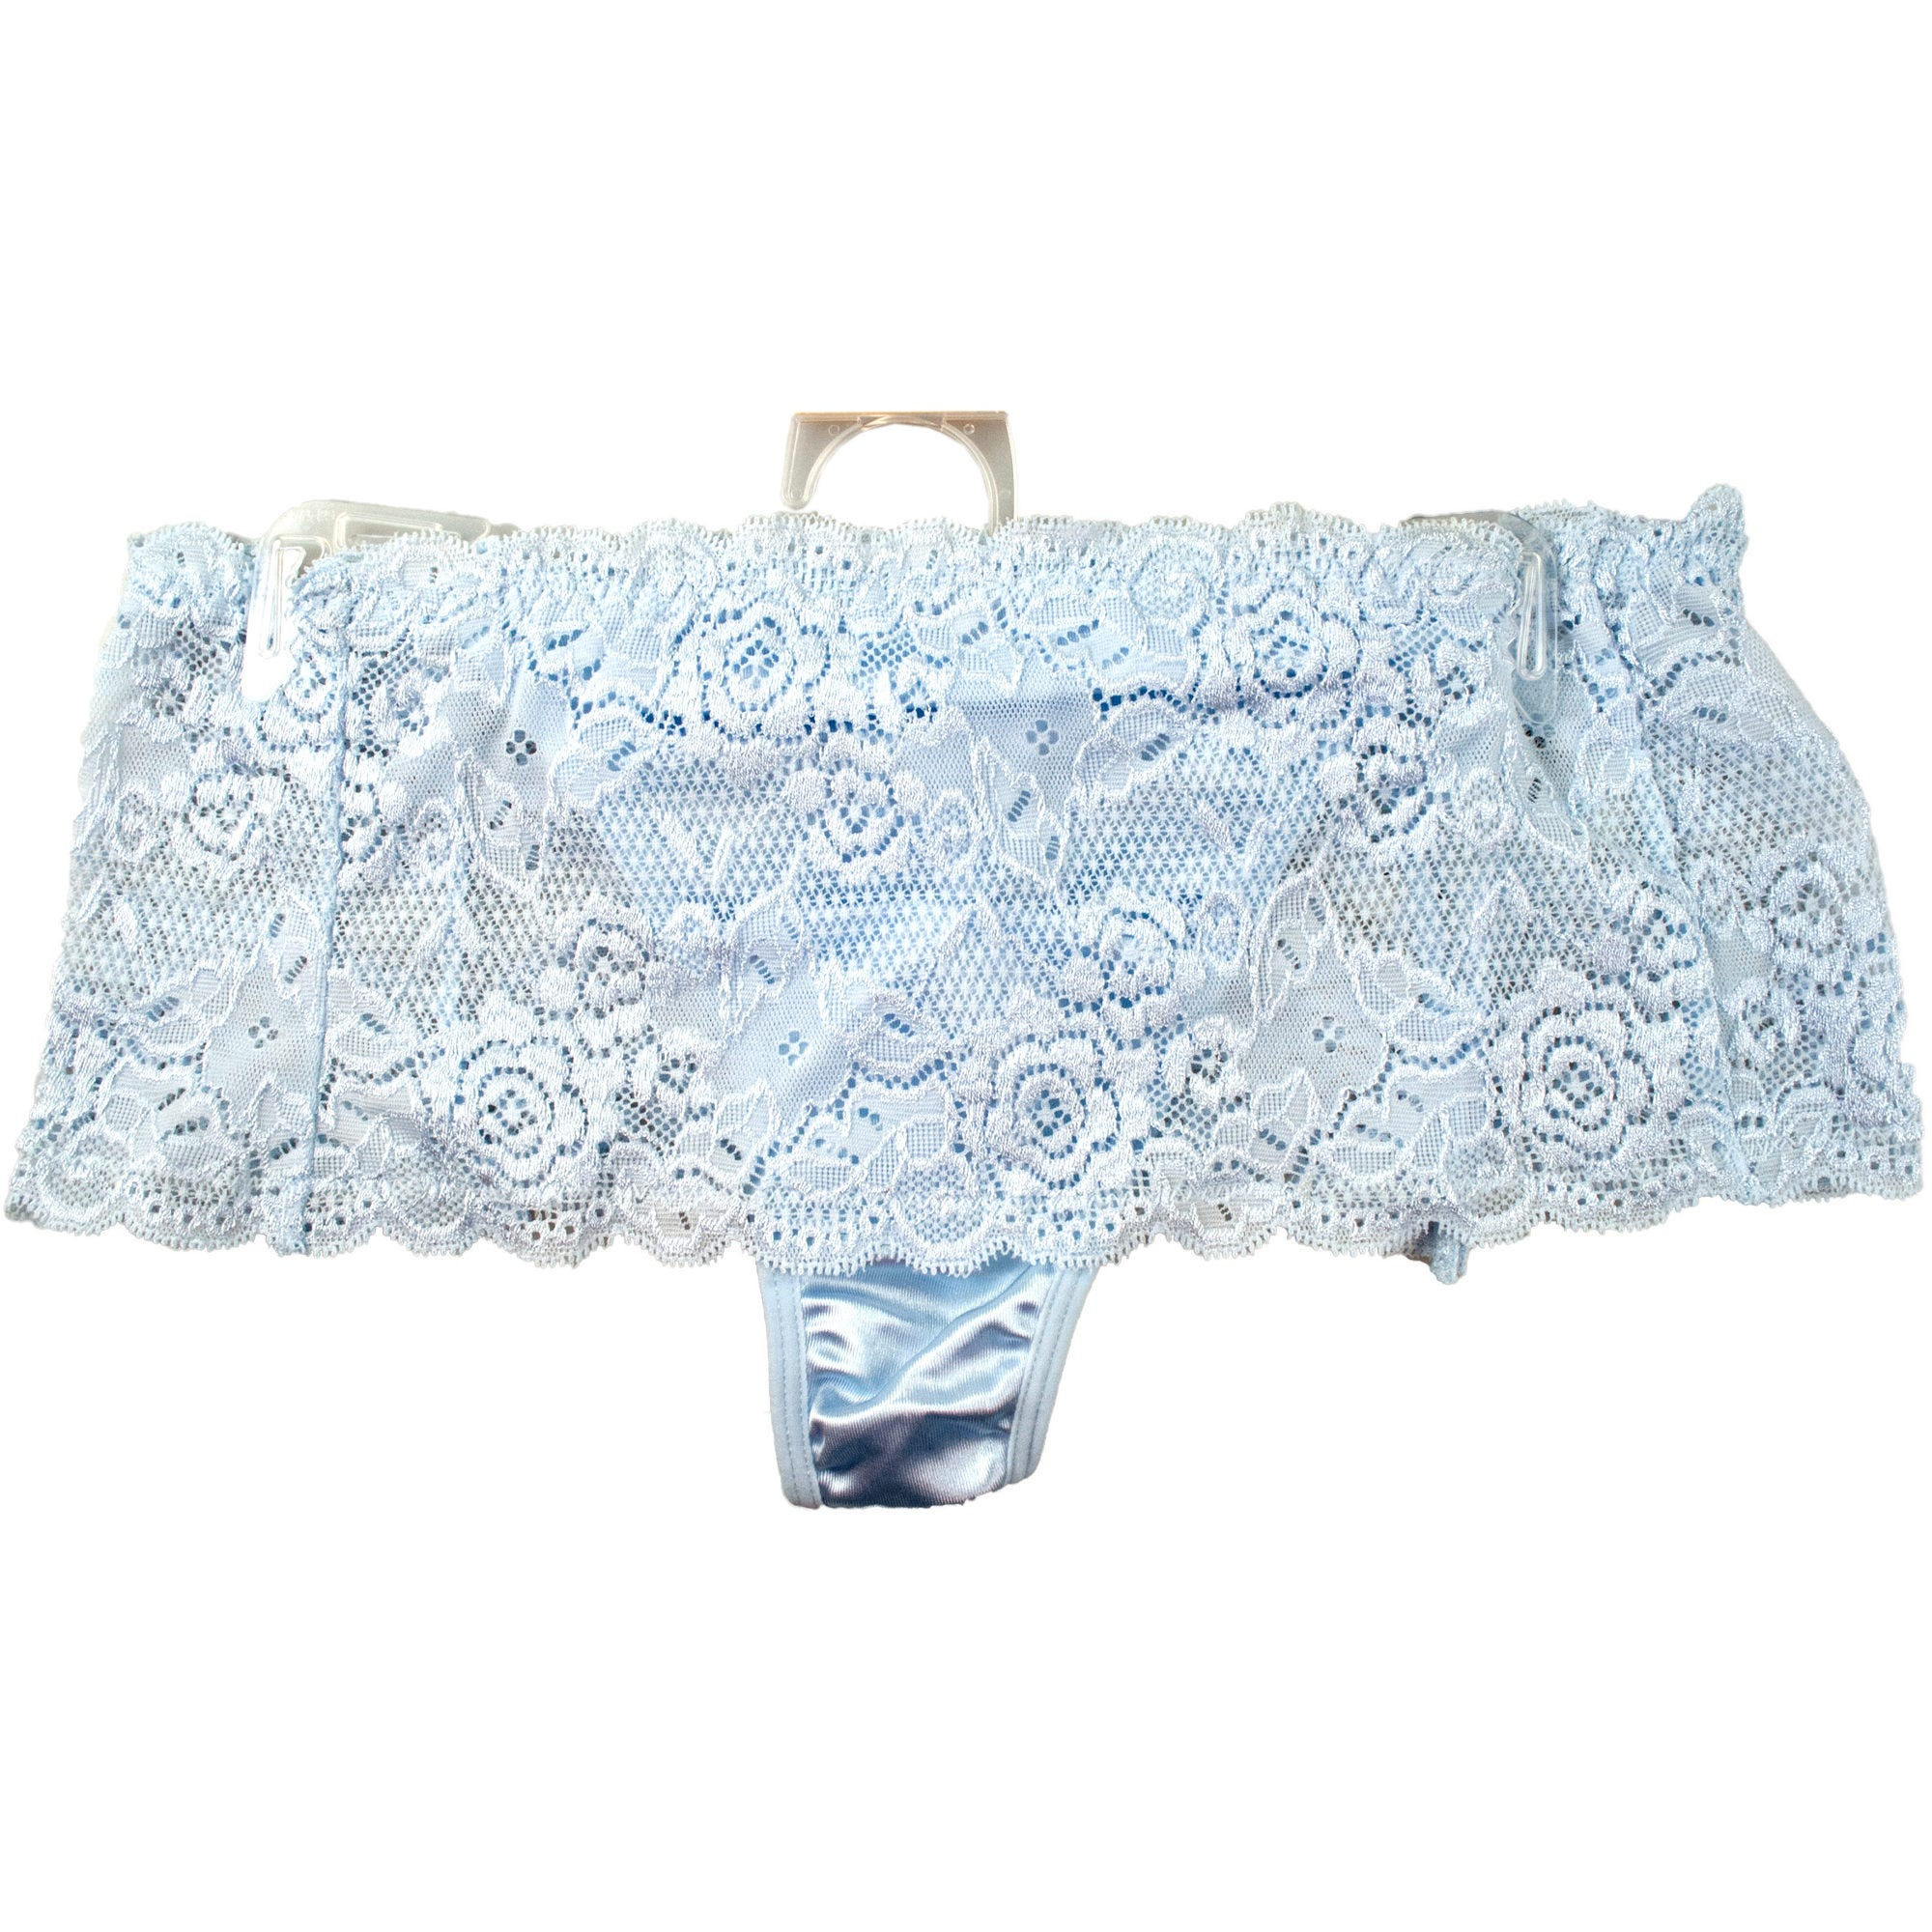 805dbed16cc Wholesale Underwear now available at Wholesale Central - Items 1 - 40